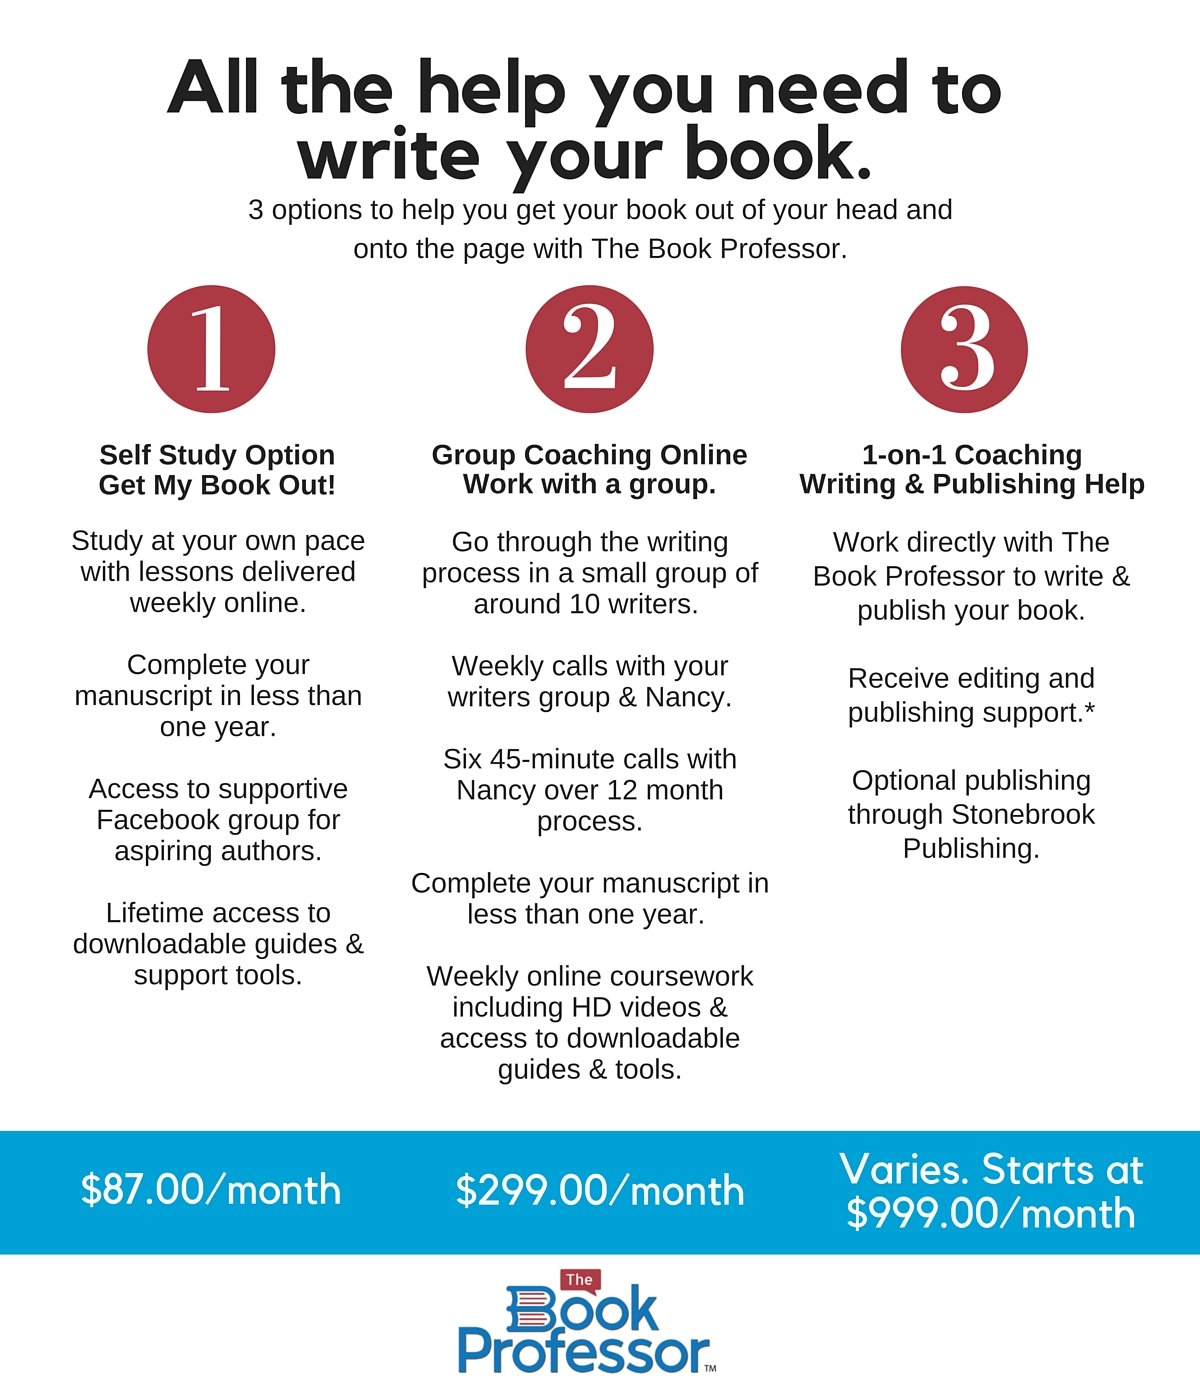 tips on writing your first book In part 4 of writing your first book, i will provide you will tools and tips to help you continue, as well as a promised free checklist to help you implement everything we have talked about the checklist will be at the bottom of the post.